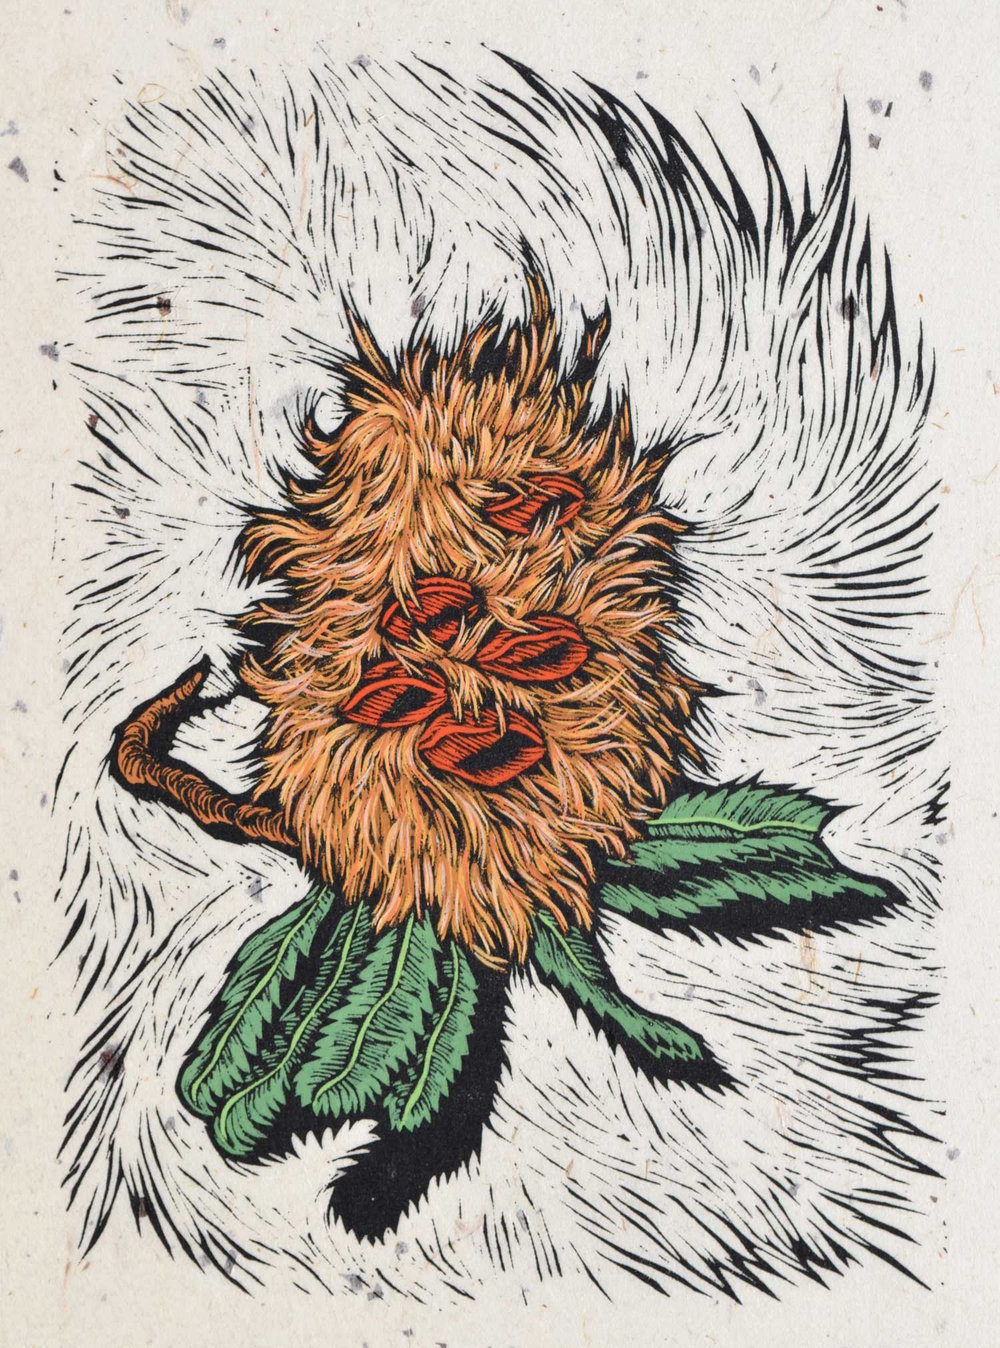 Banksia Man  41 x 29 cm    Edition of 50   Hand Coloured Linocut on handmade Japanese paper  $850